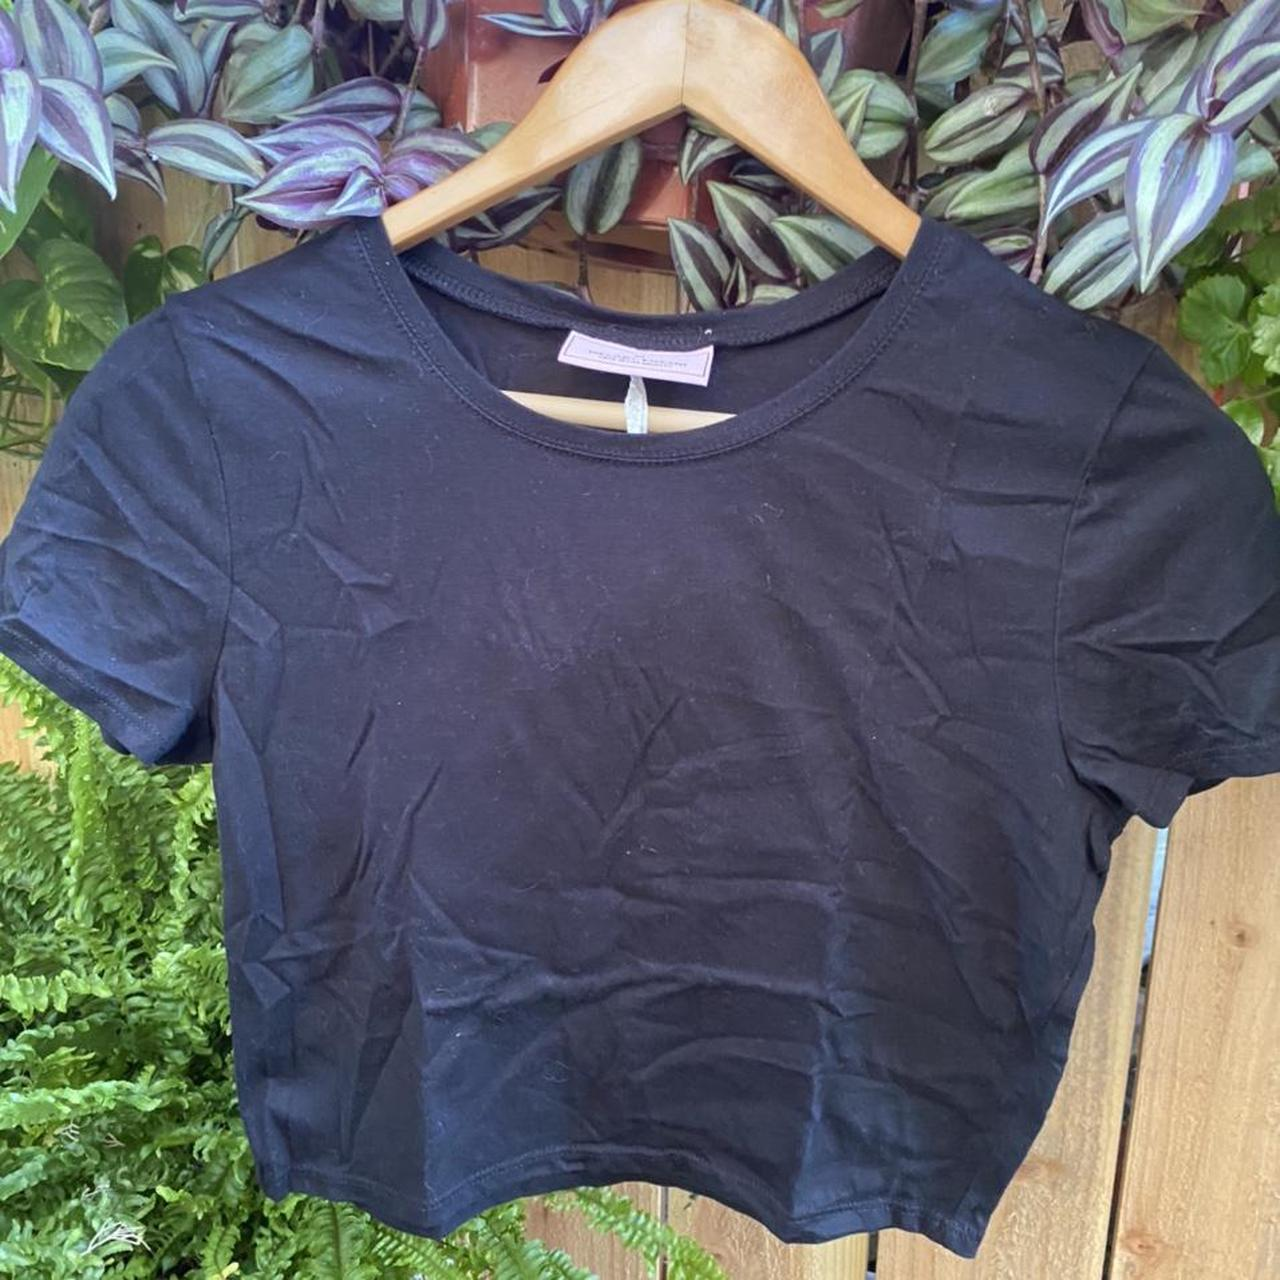 Product Image 1 - EVERYTHING MUST GO, Message about